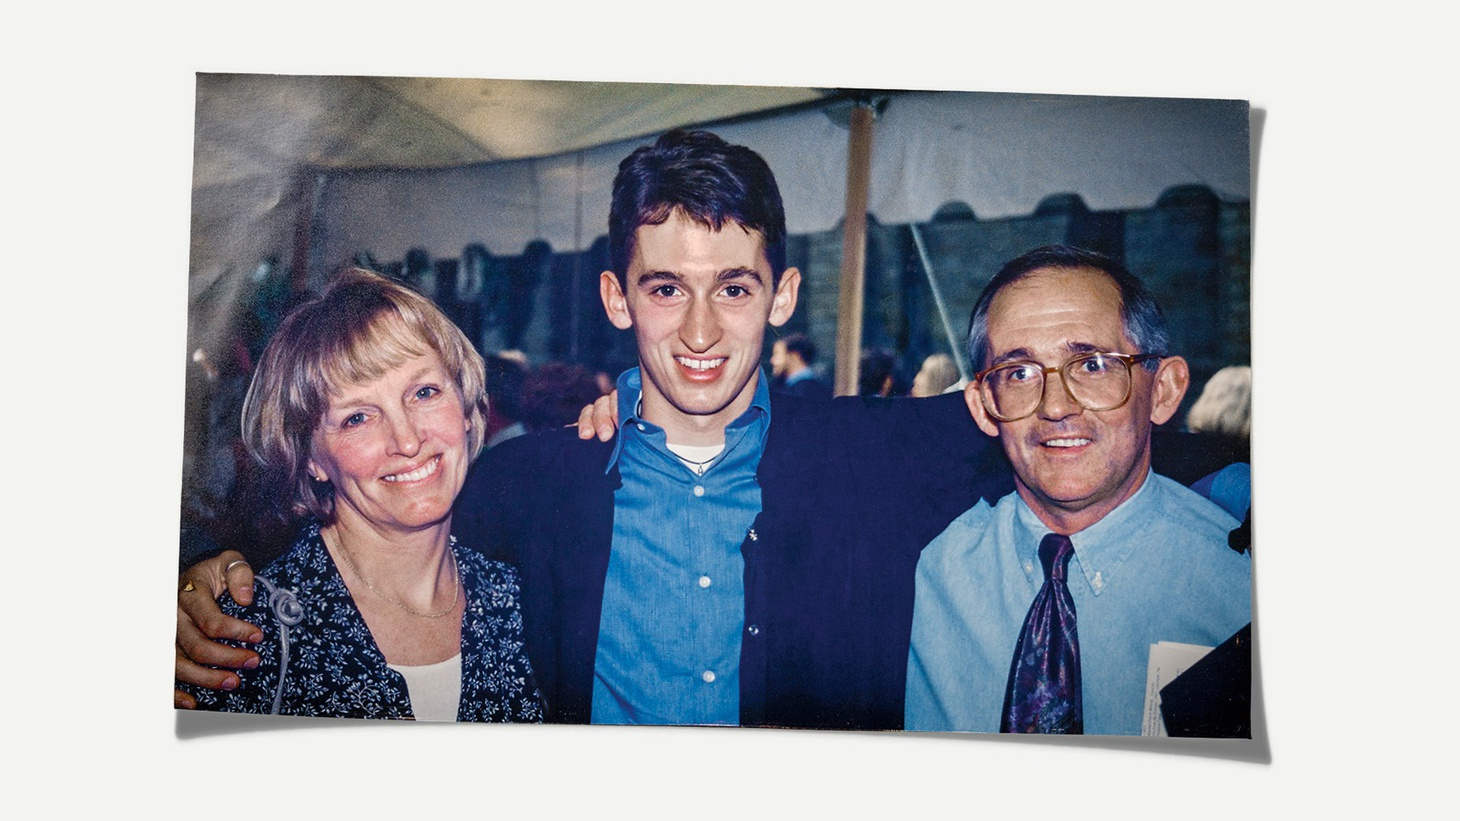 Bobby McIlvaine, with his parents, Helen and Bob Sr., at his Princeton graduation in 1997. Bobby McIlvaine's body was found in the wreckage of the Twin Towers. Photo by Danna Singer, courtesy of The Atlantic.